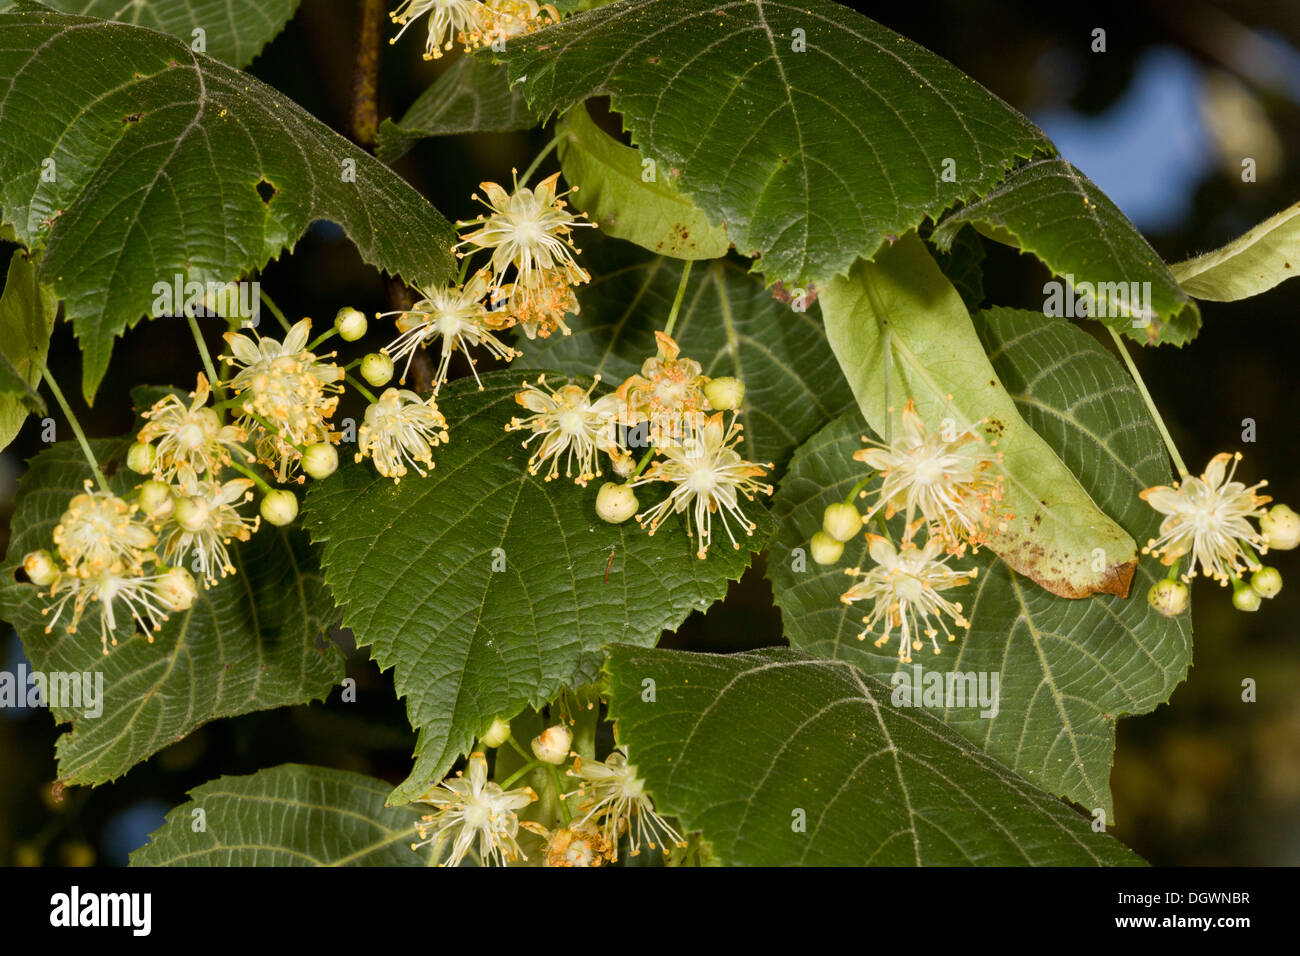 Large-leaved Lime, Tilia platyphyllos in flower. Rich nectar source. Uncommon native in UK. Stock Photo